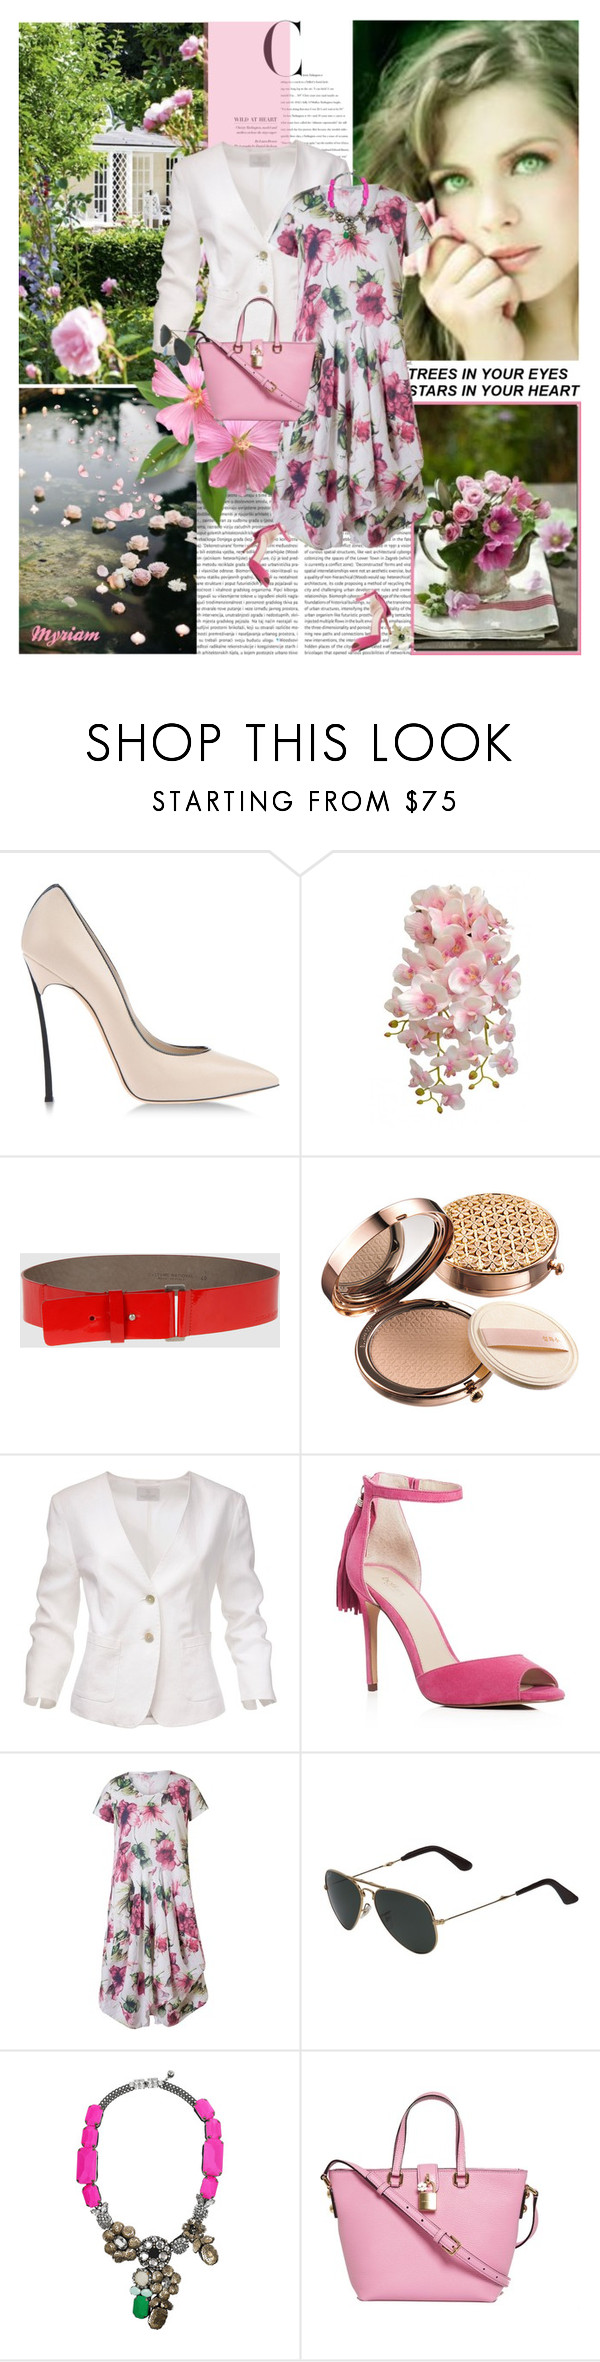 """""""I love the nature"""" by lovemeforthelife-myriam ❤ liked on Polyvore featuring Casadei, COSTUME NATIONAL, Sulwhasoo, Poolhouse, Botkier, Chesca, Ray-Ban, Shourouk and Dolce&Gabbana"""